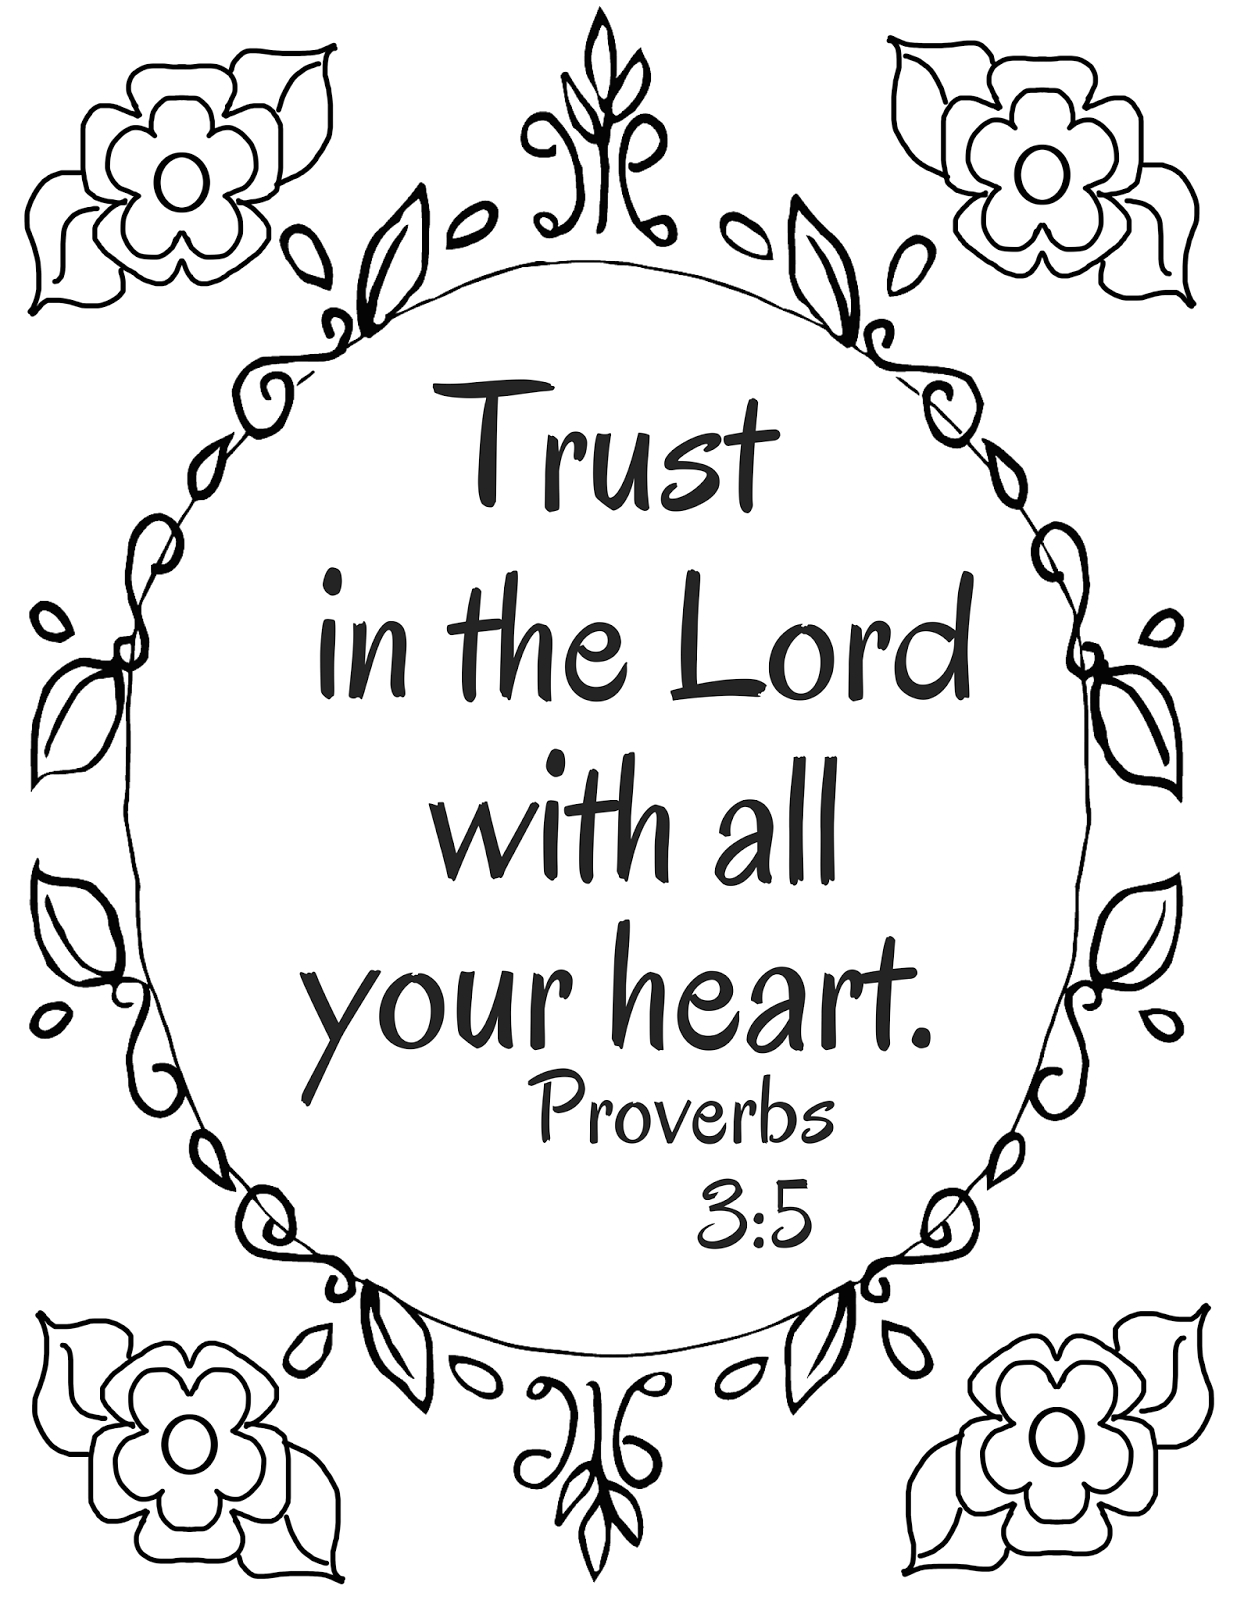 Trust In the Lord with All Your Heart Coloring Page the Prudent Pantry Trust In the Lord with All Your Heart